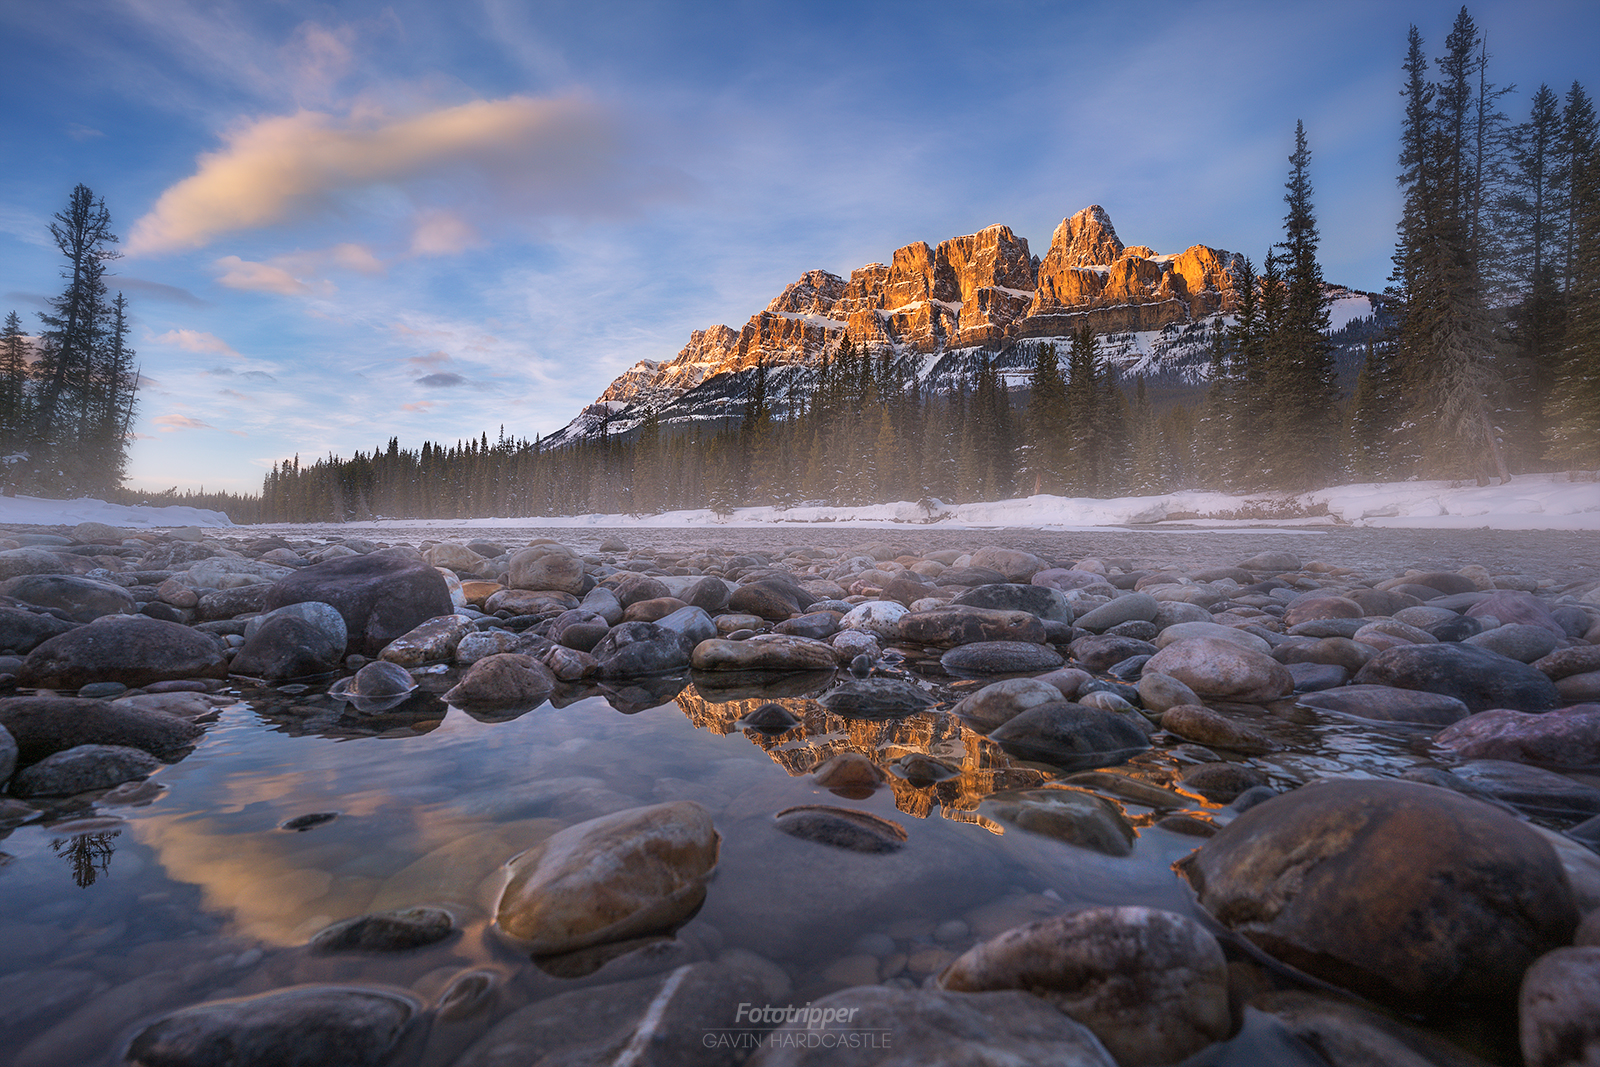 Castle Mountain - Banff Photography Workshop with Gavin Hardcastle